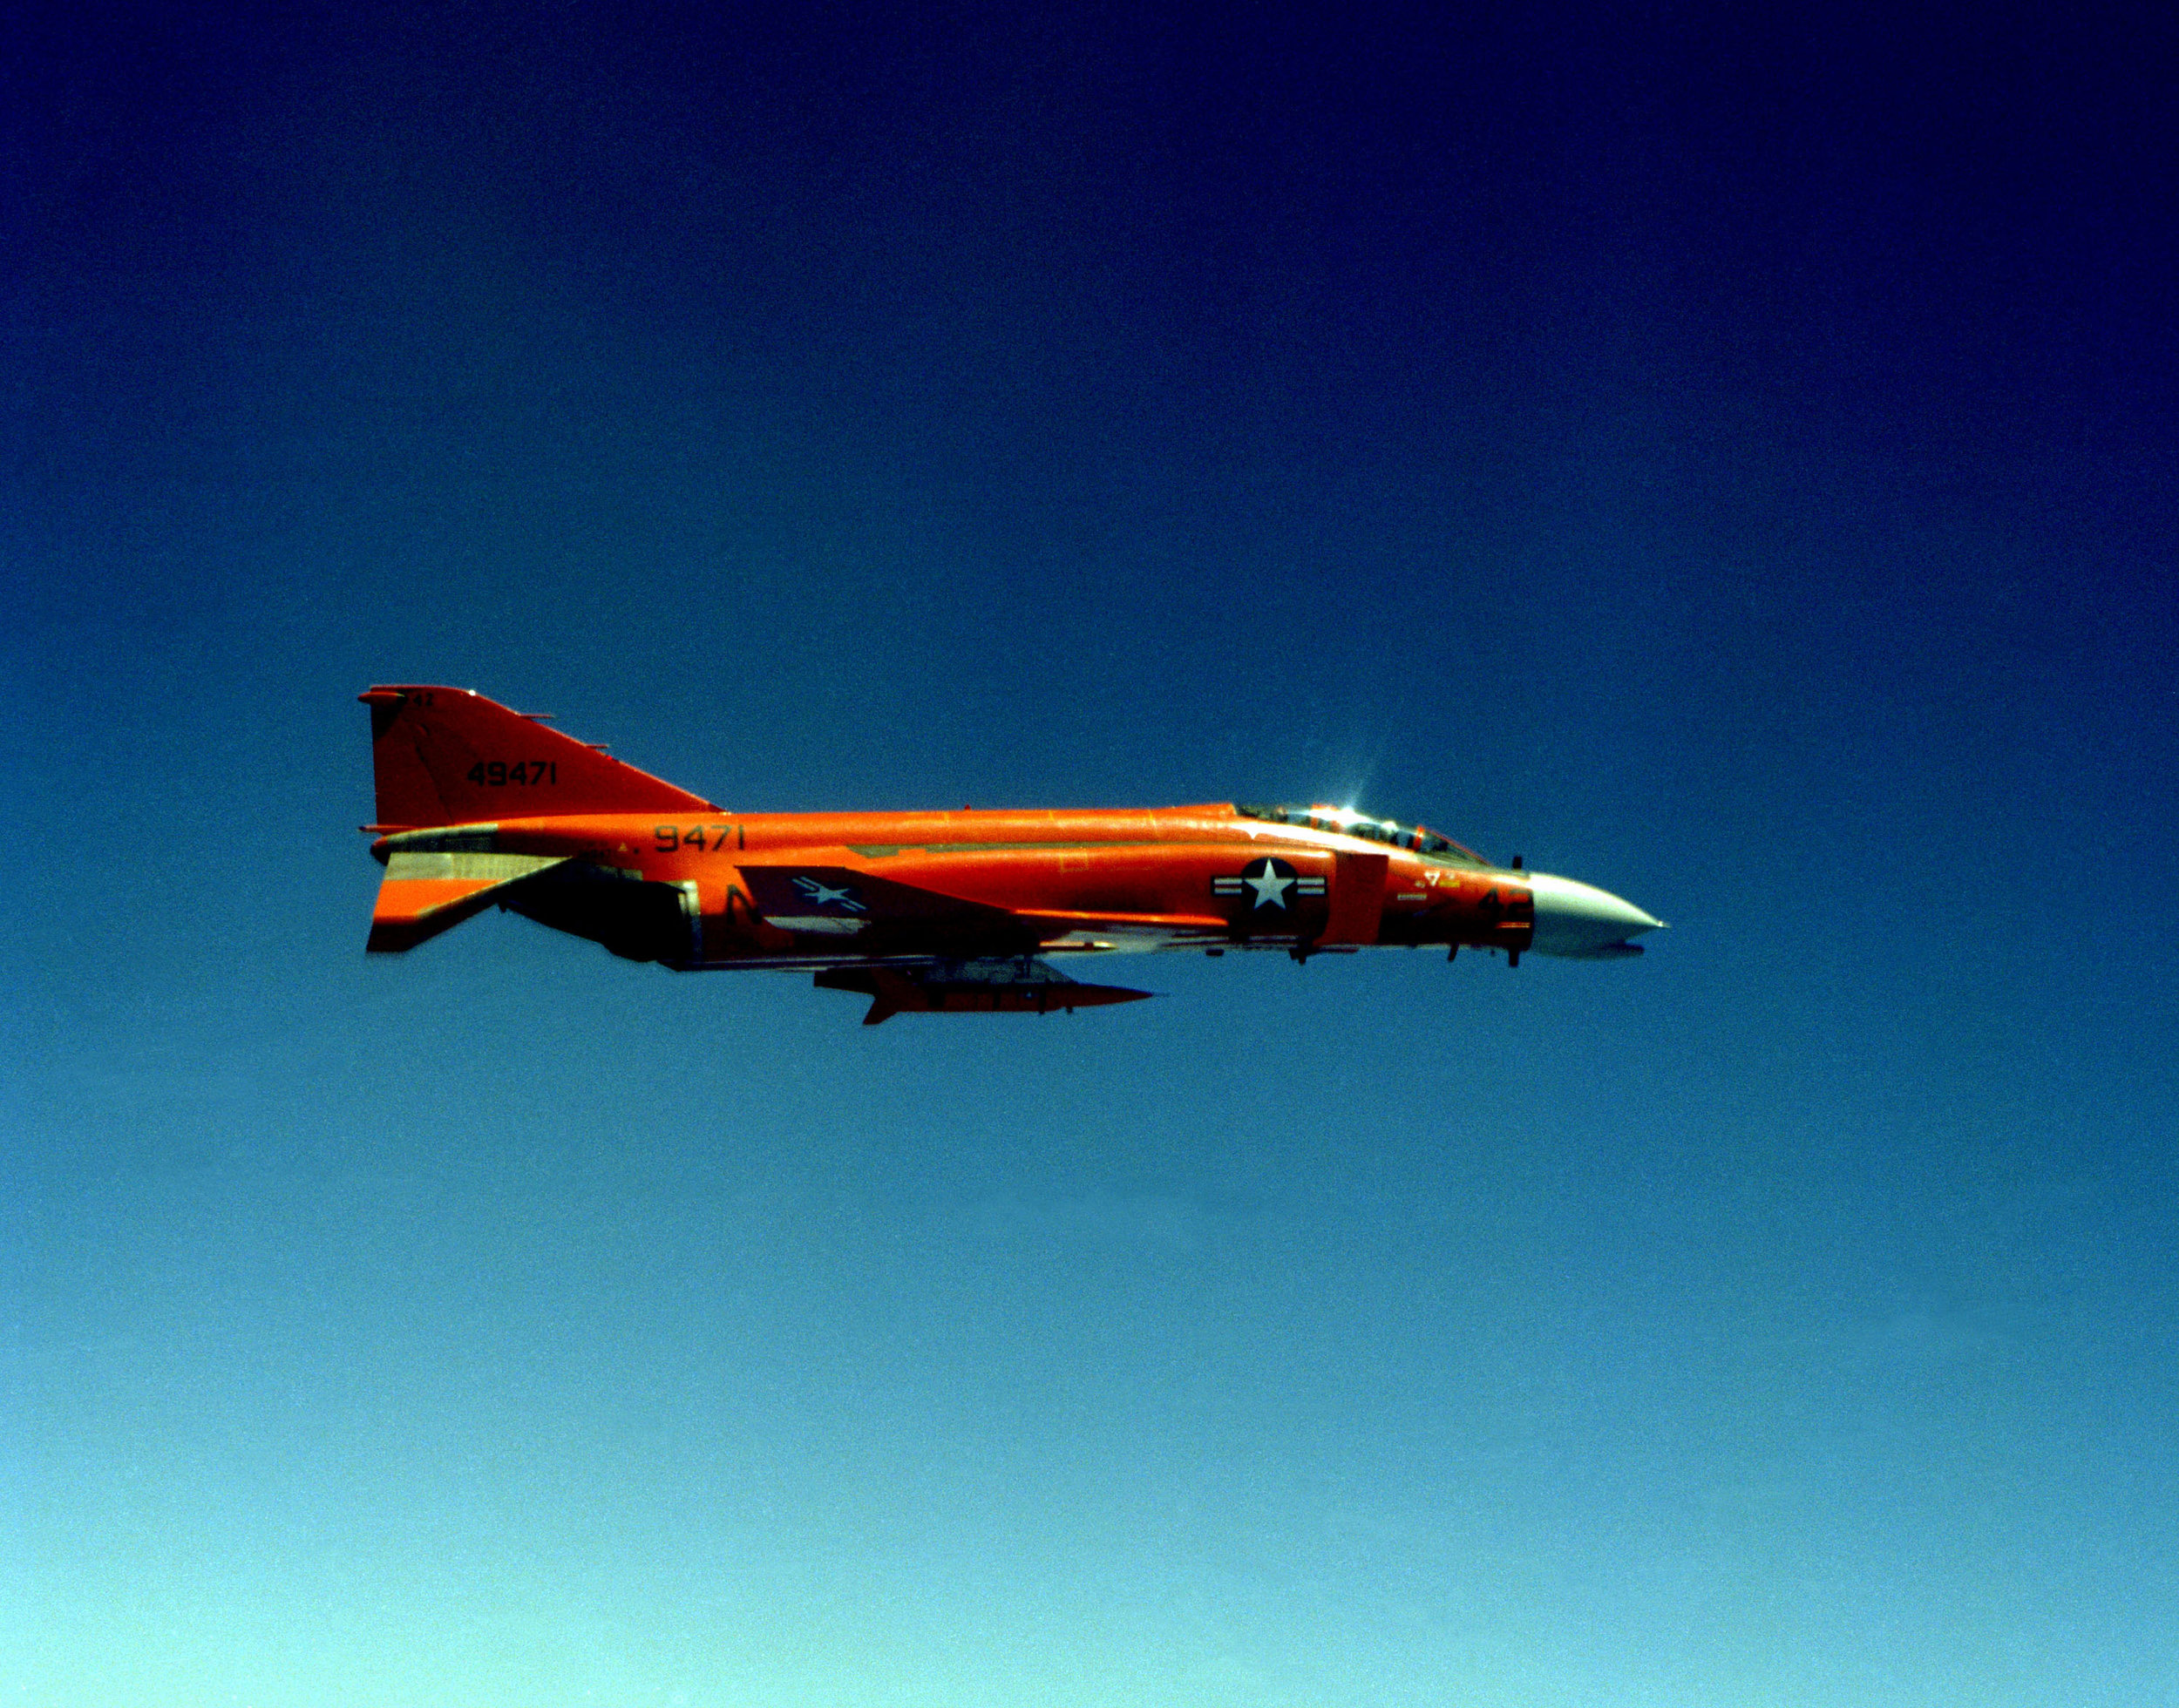 A QF-4 Phantom in the early 1980s.